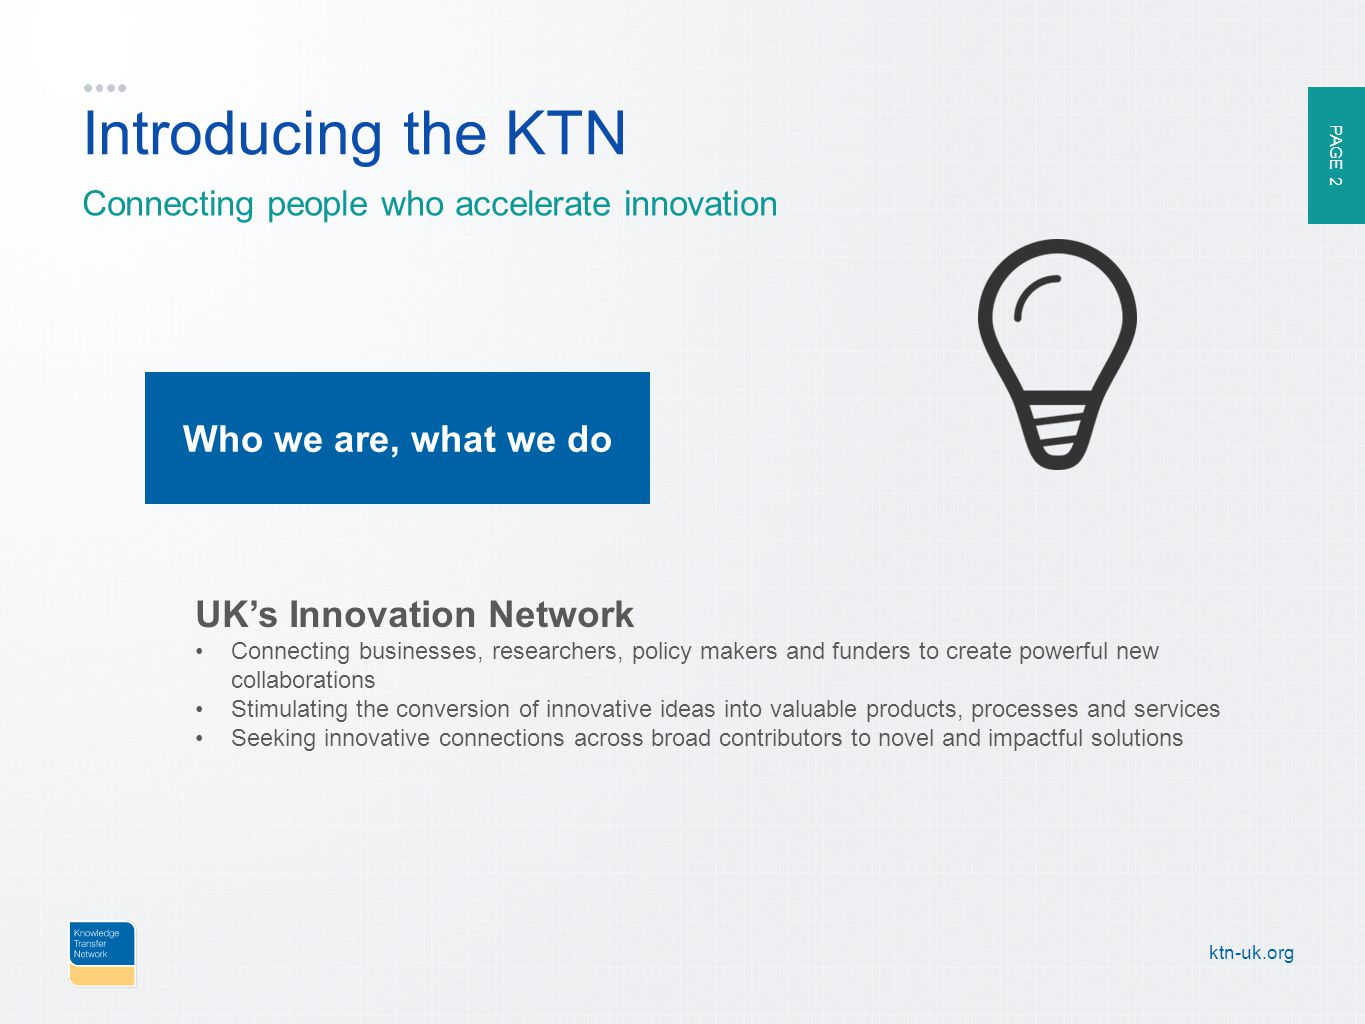 PAGE 2 ktn-uk.org Introducing the KTN Connecting people who accelerate innovation UK's Innovation Network Connecting businesses, researchers, policy makers and funders to create powerful new collaborations Stimulating the conversion of innovative ideas into valuable products, processes and services Seeking innovative connections across broad contributors to novel and impactful solutions Who we are, what we do